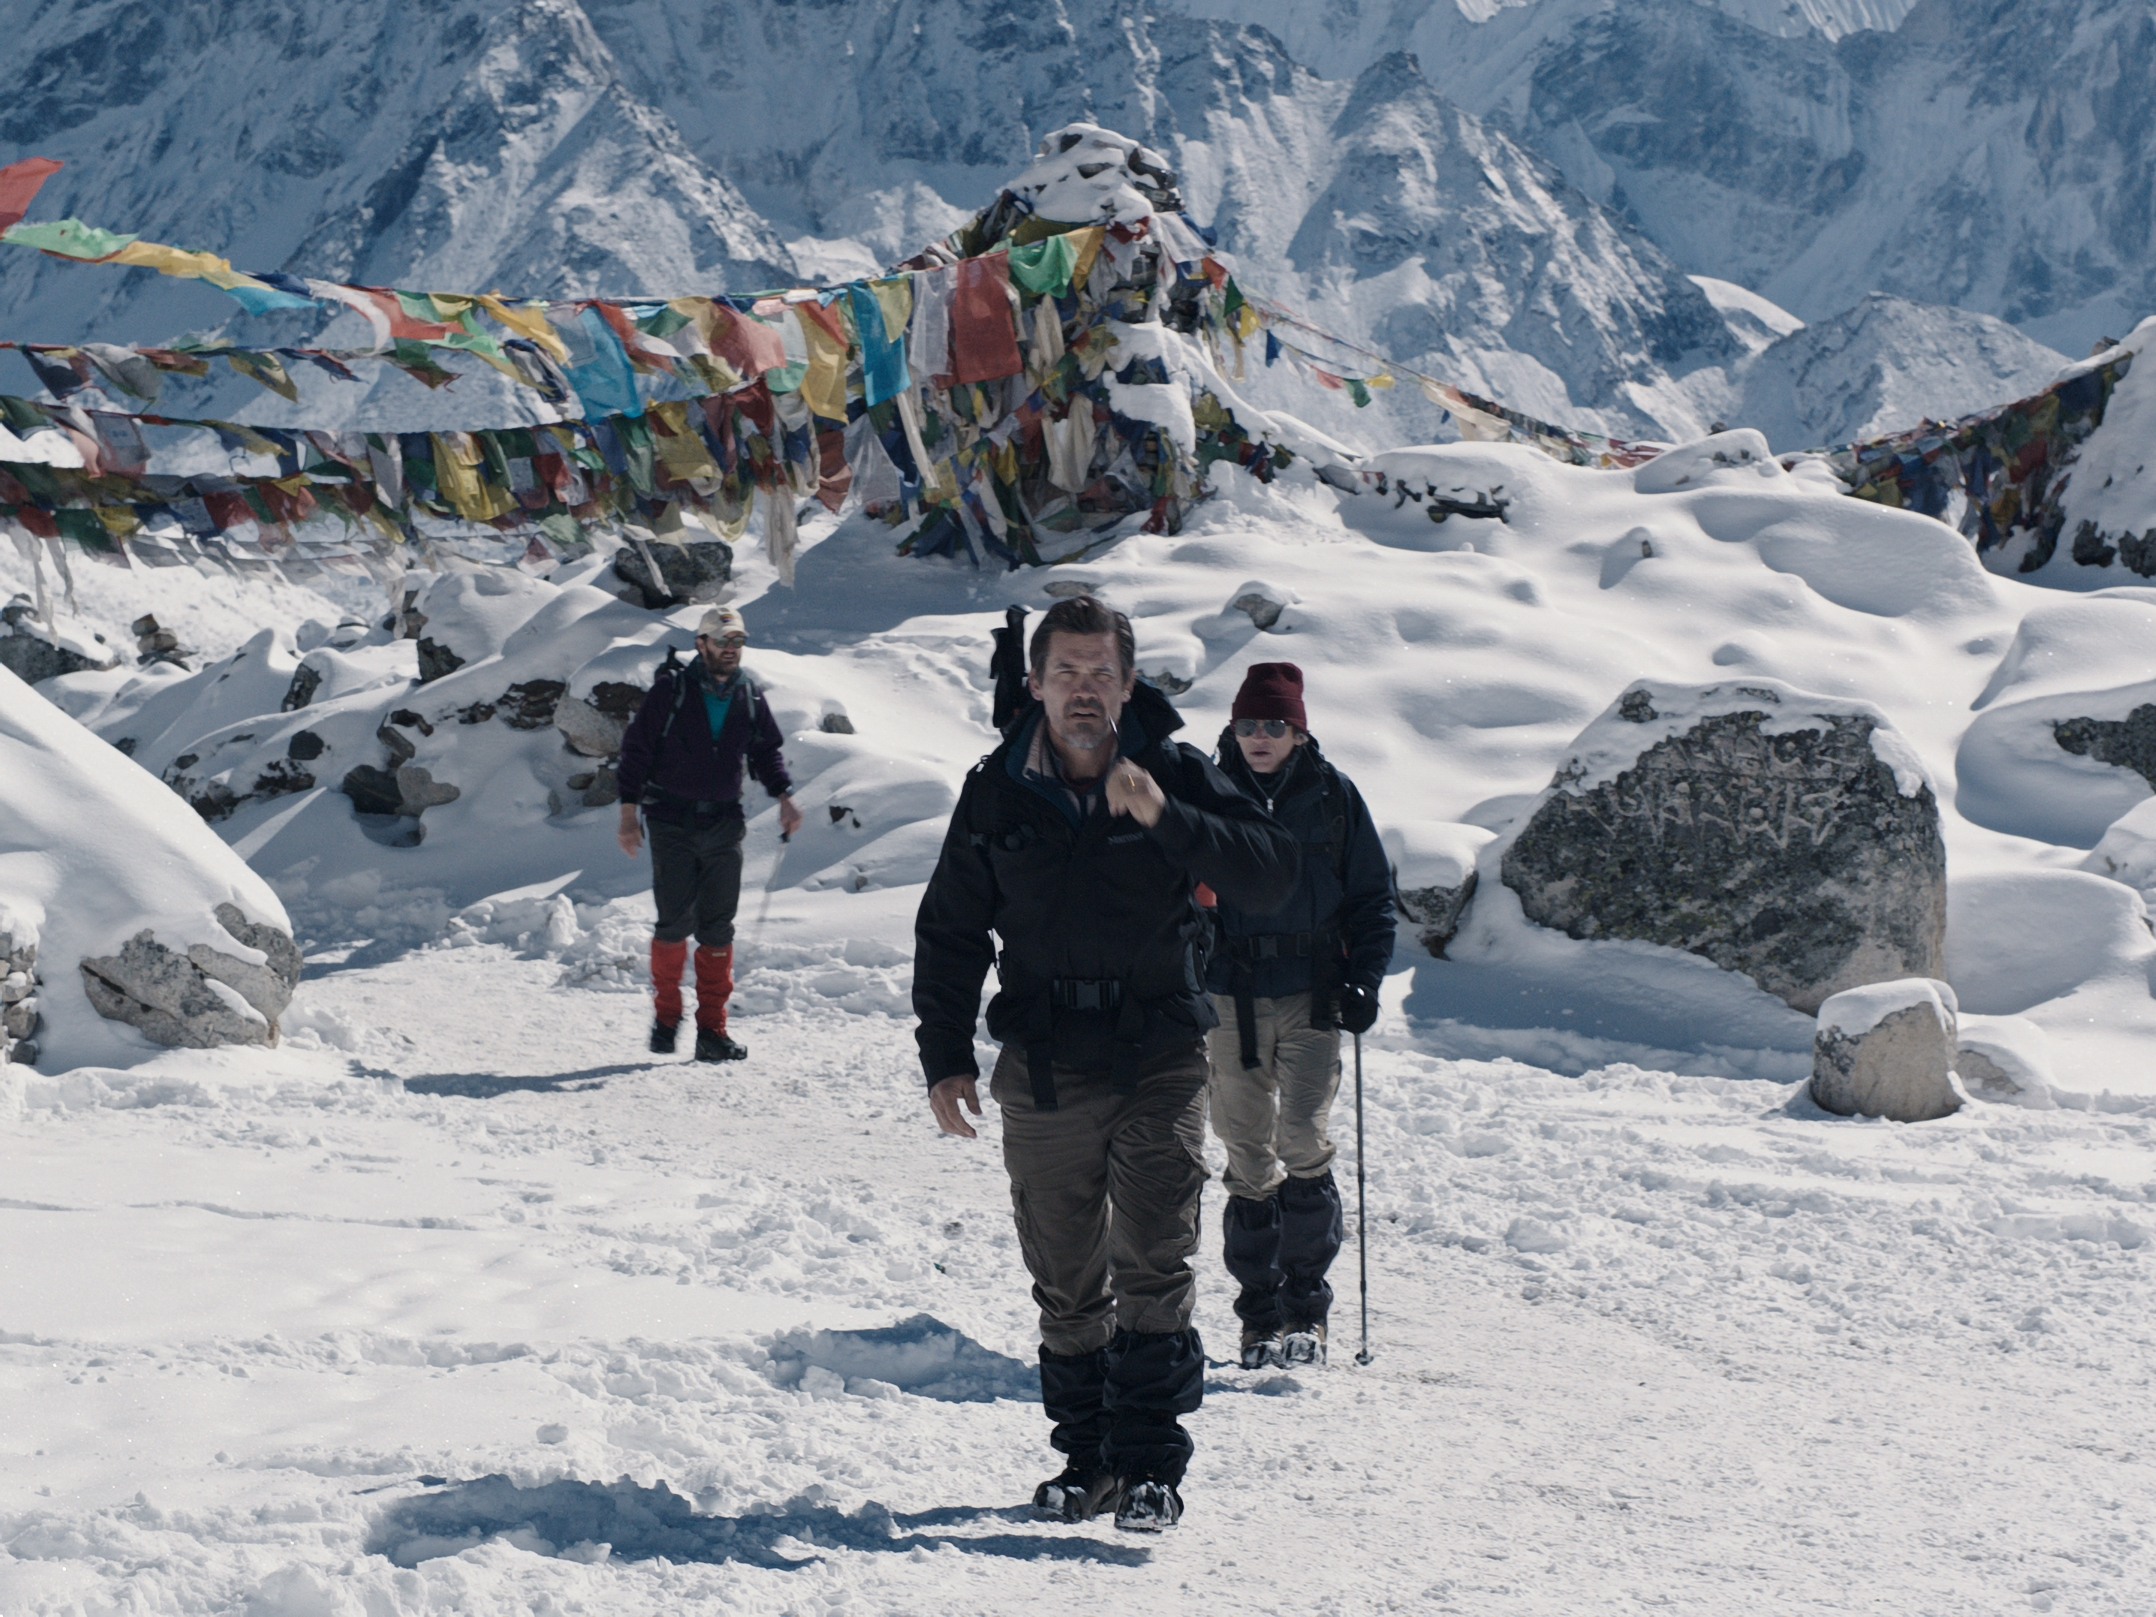 20604-Everest_8_-_courtesy_of_Universal_Pictures